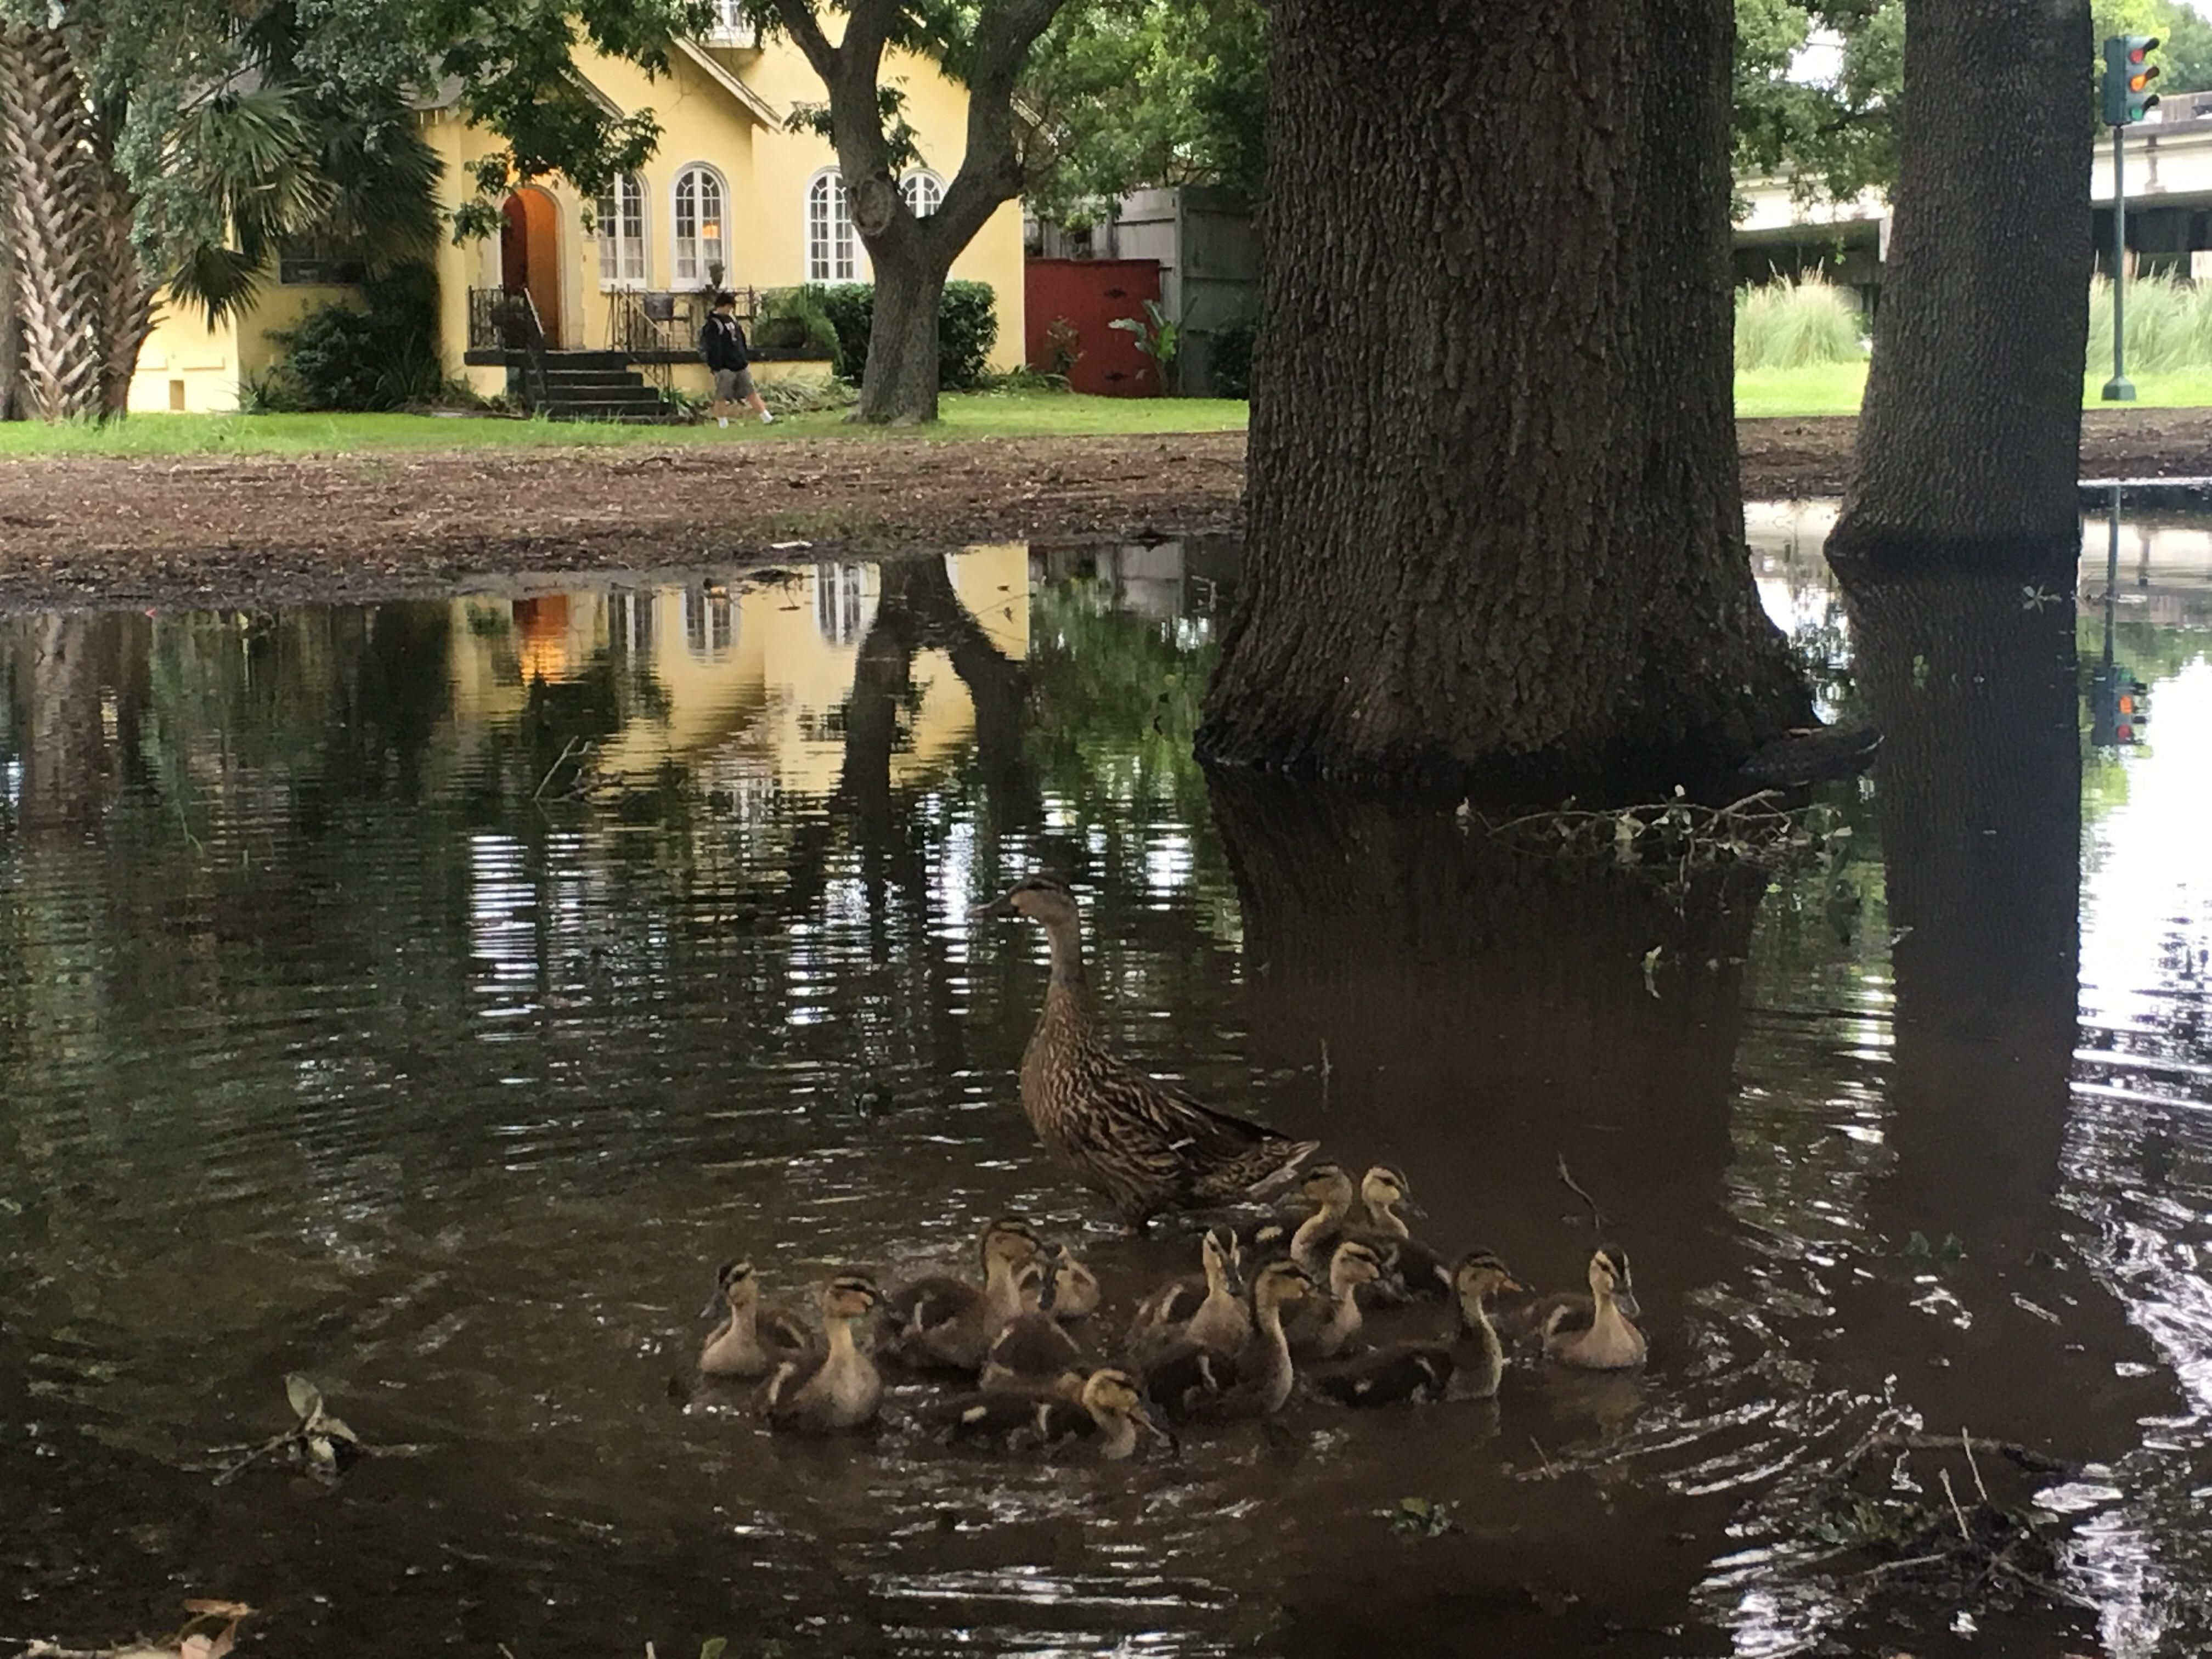 Feeding ducks that hatched on the median after Tropical Storm Cindy http://ift.tt/2ukcmH1